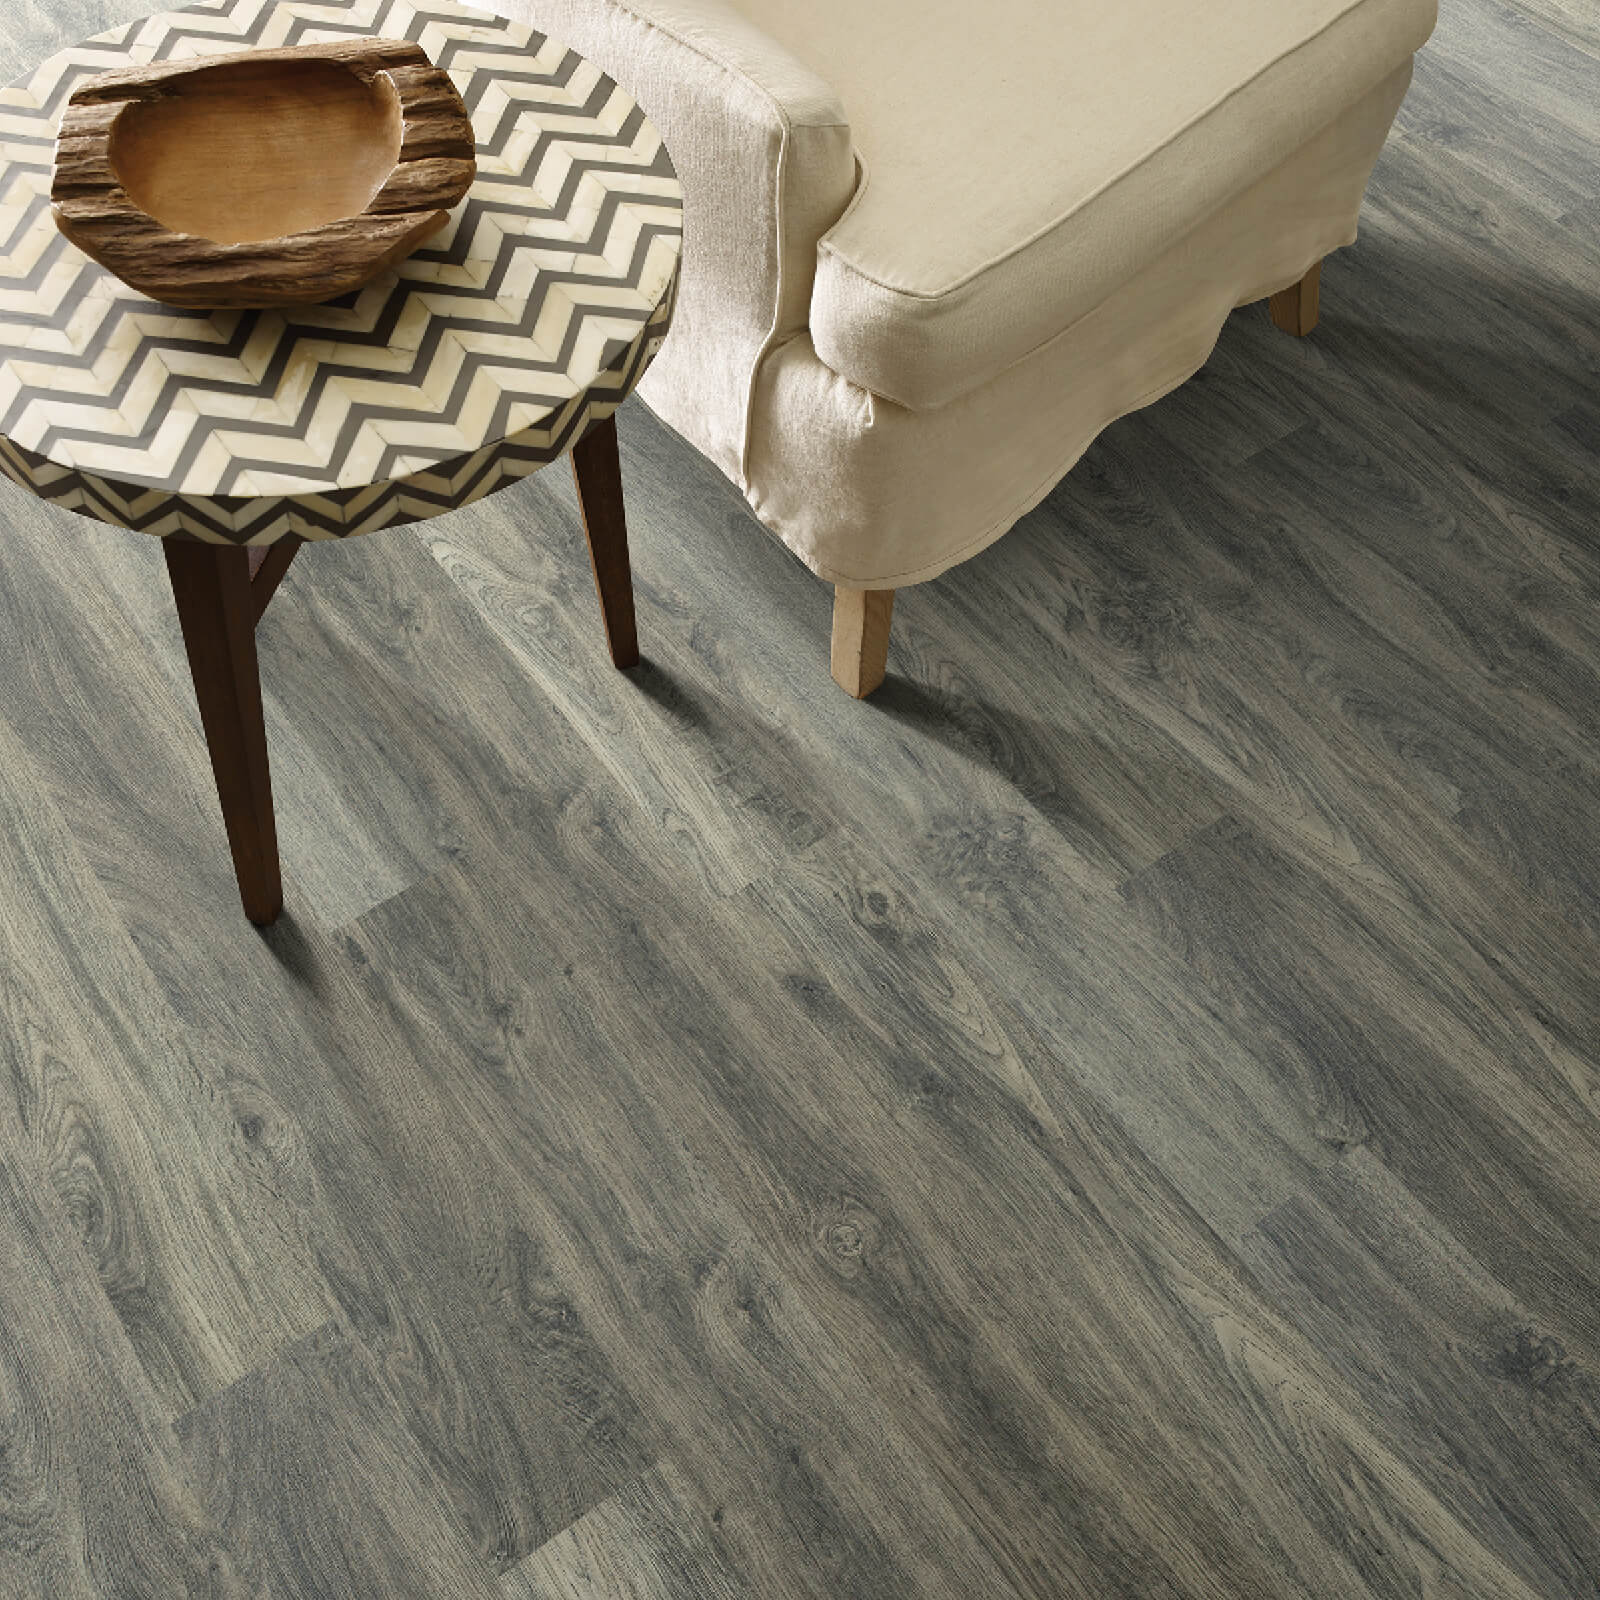 Gold Coast Shaw laminate | Great Floors